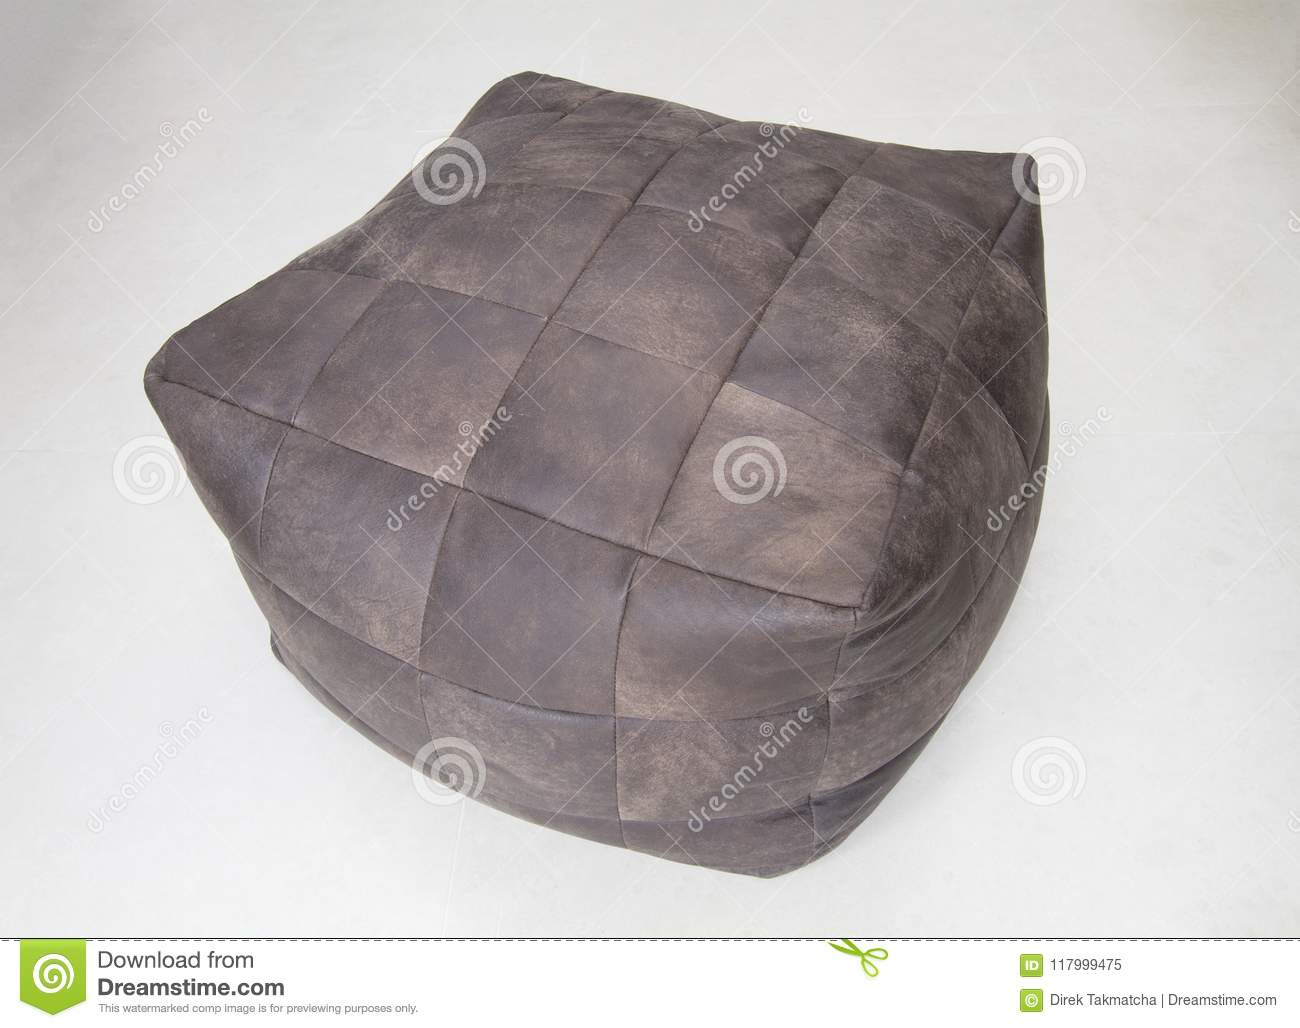 Download Brown leather cube chair stock image. Image of furniture - 117999475 & Brown leather cube chair stock image. Image of furniture - 117999475